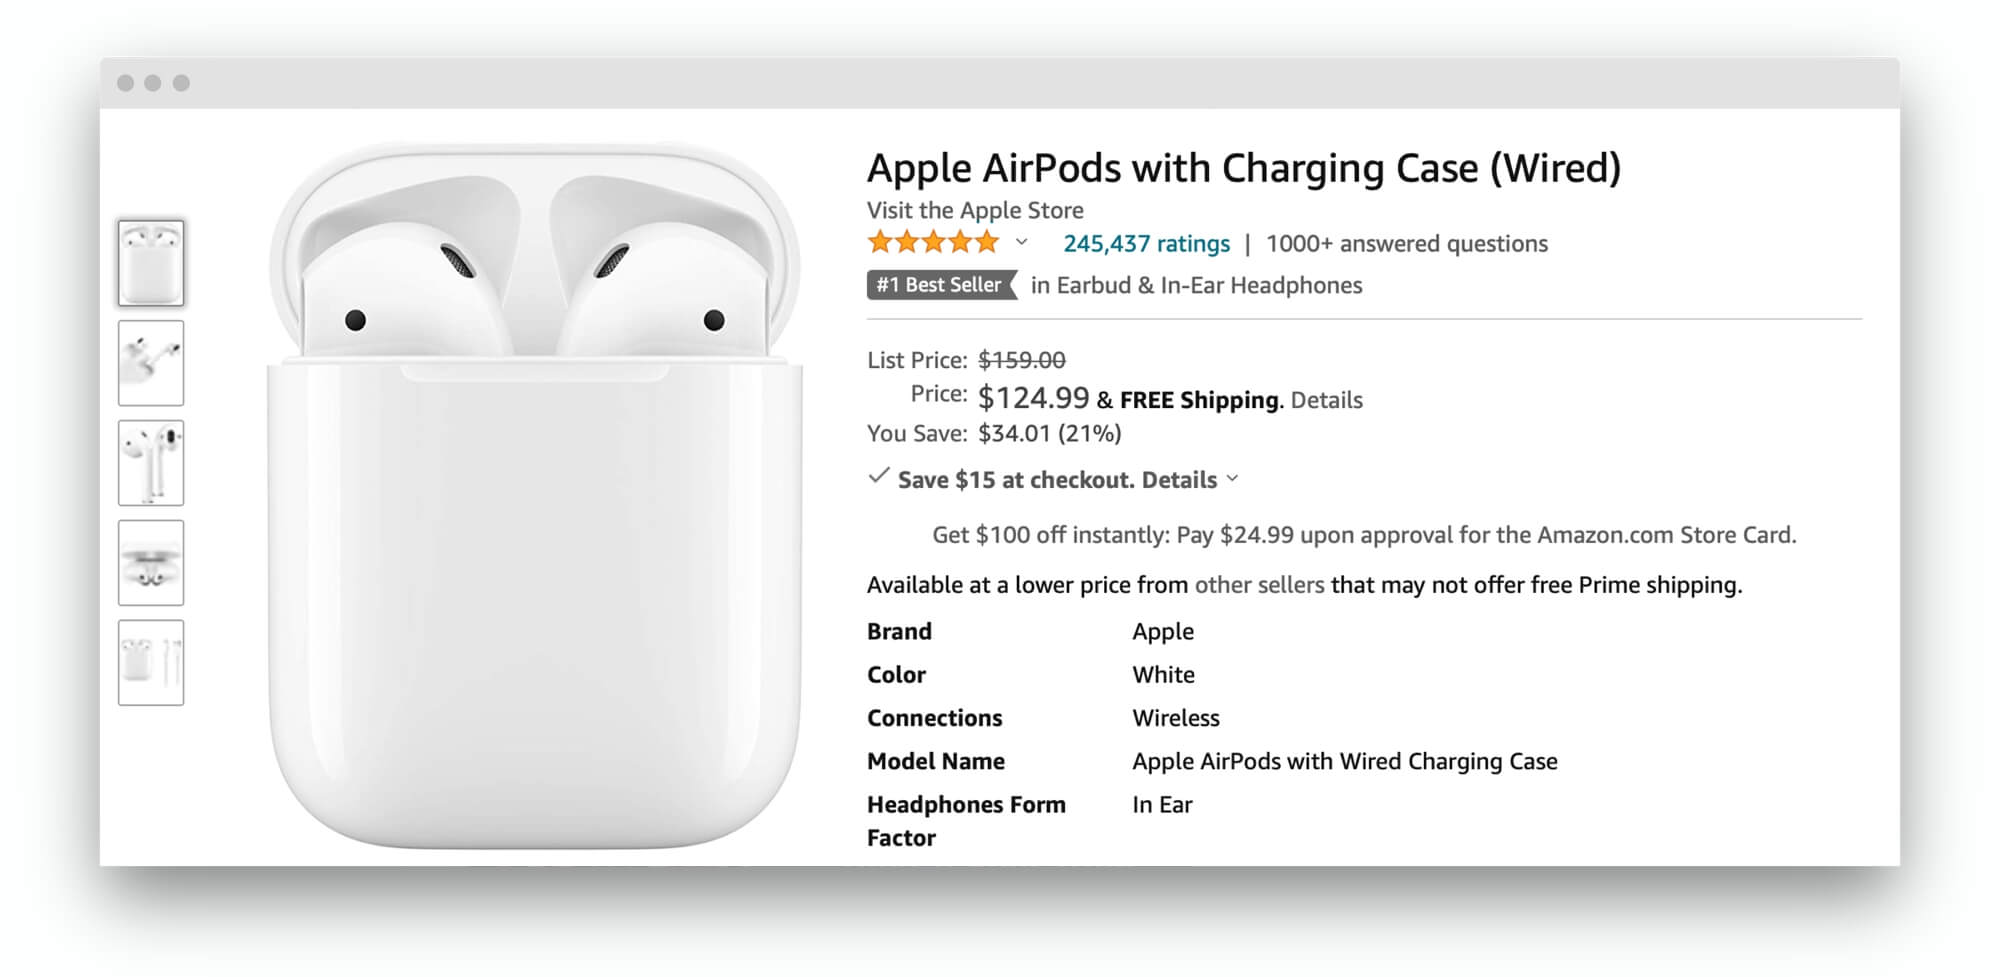 Apple AirPods have a 4.8 out of 5 rating based on 245,000 global ratings